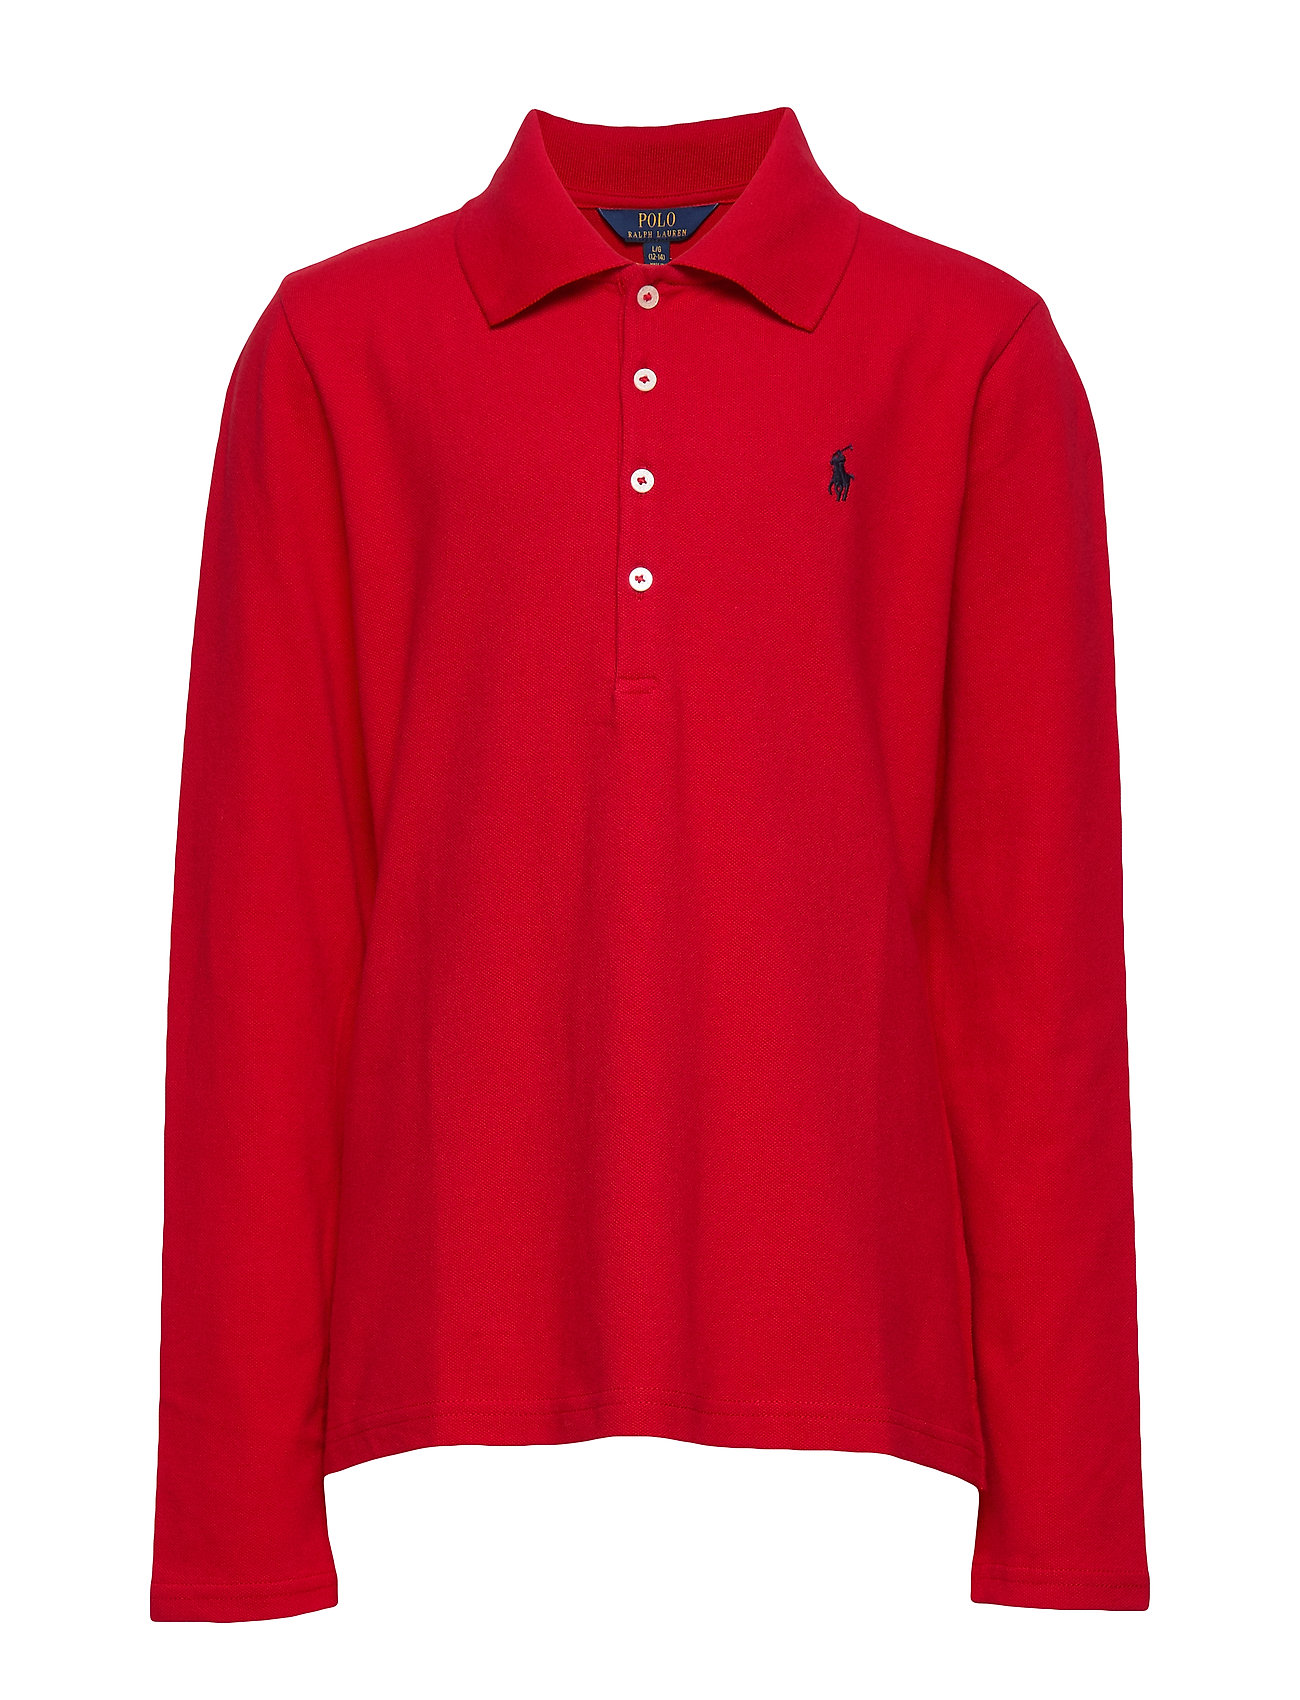 Ralph Lauren Kids Stretch Cotton Mesh Polo Shirt - RL 2000 RED